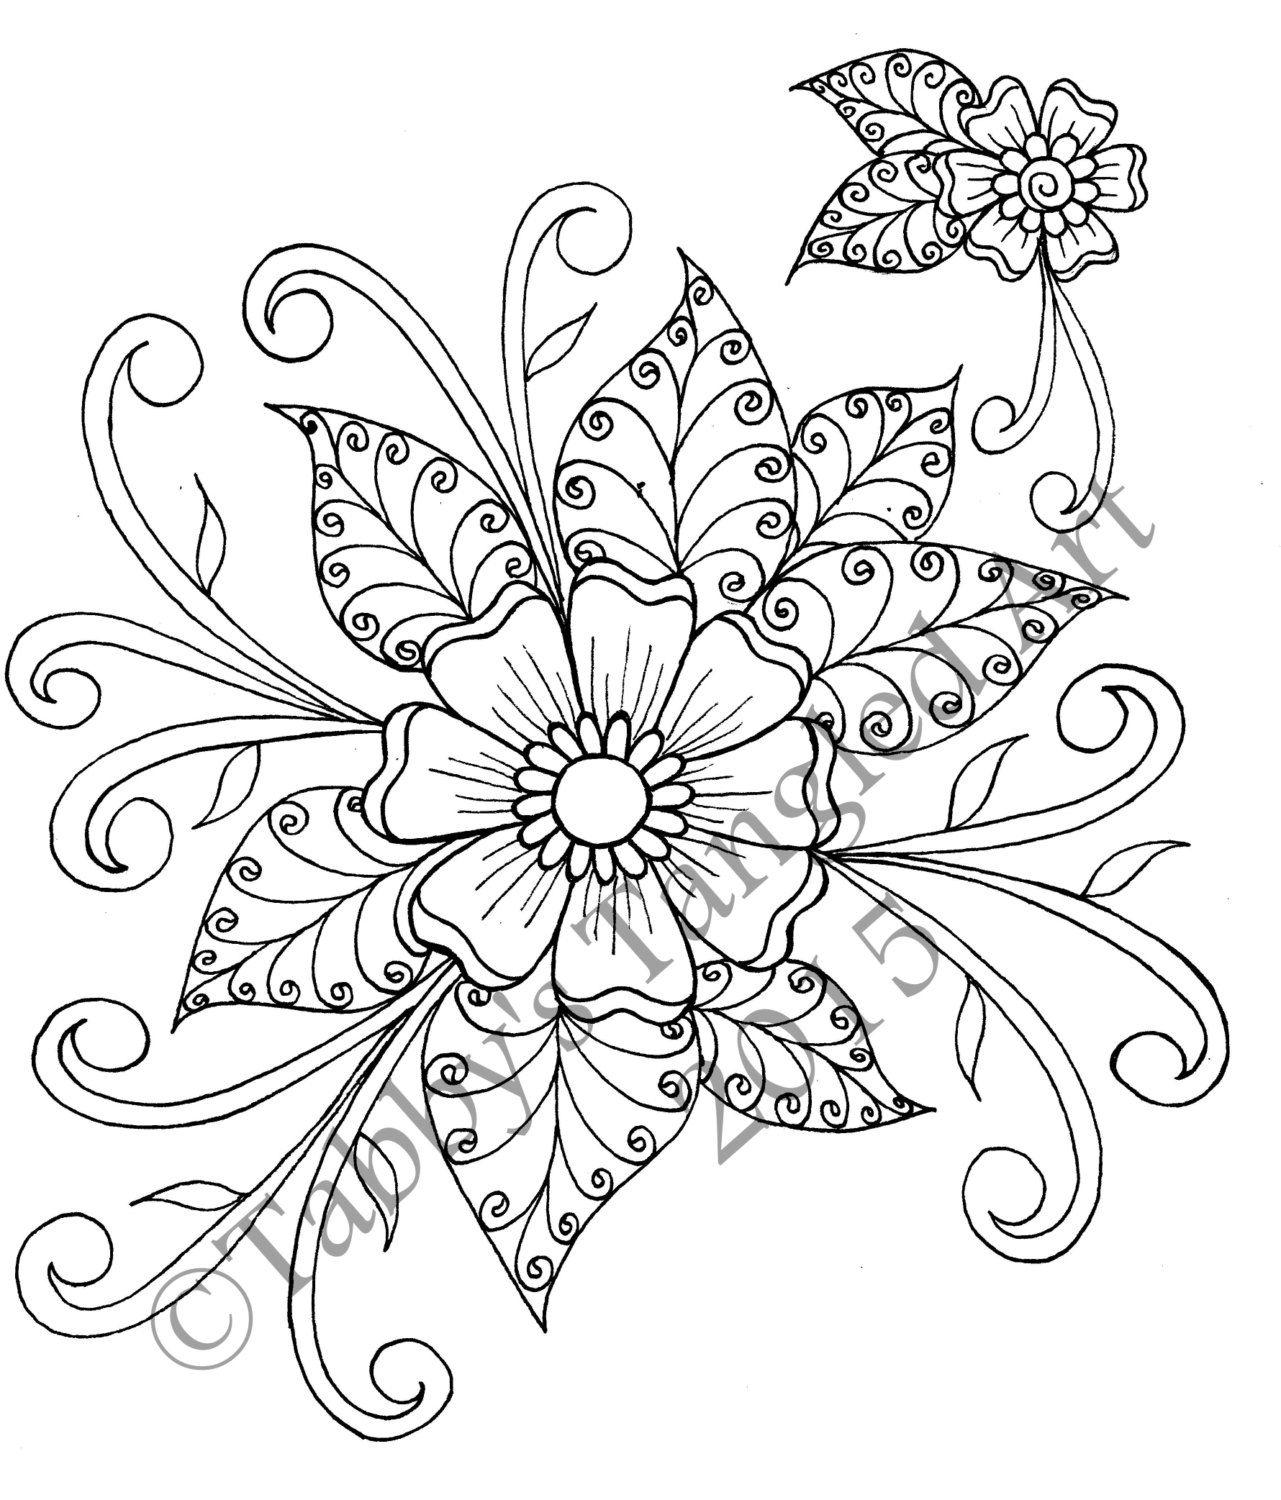 Henna Flower Coloring Page Flower Coloring Pages Embroidery Flowers Pattern Hand Embroidery Designs